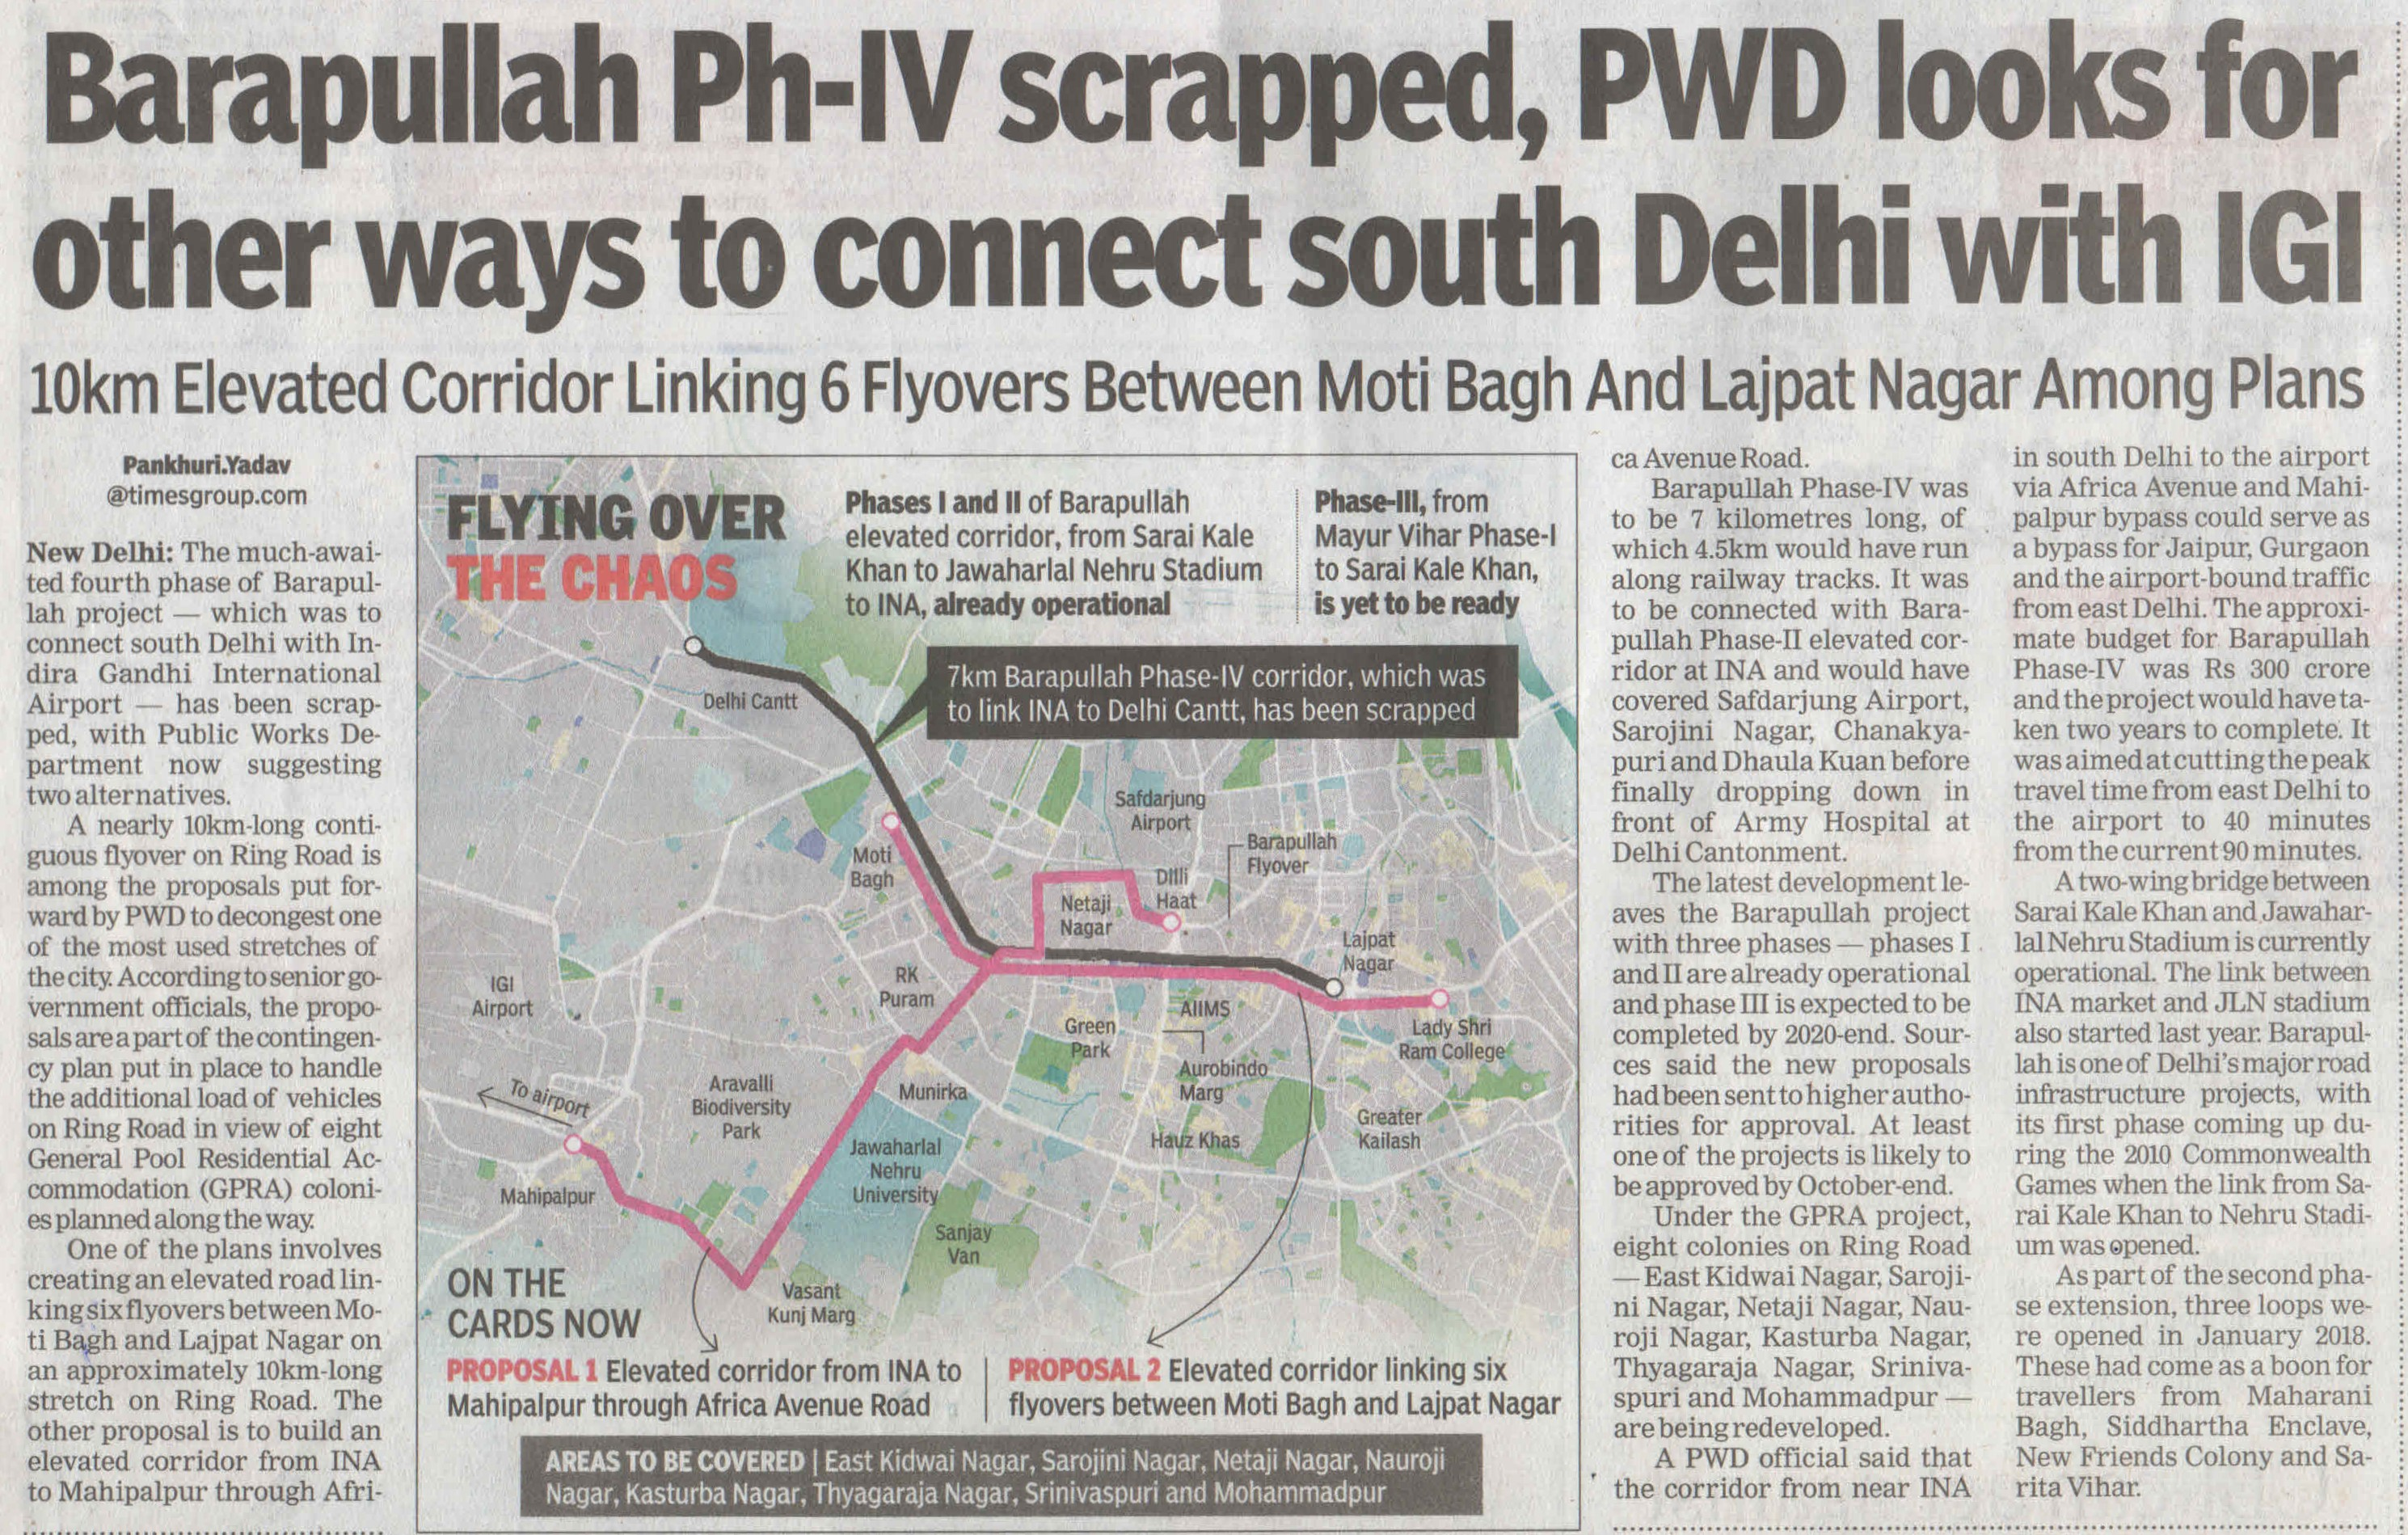 Barapullah Ph-IV scrapped, PWD look for other ways to connect South Delhi with IGI